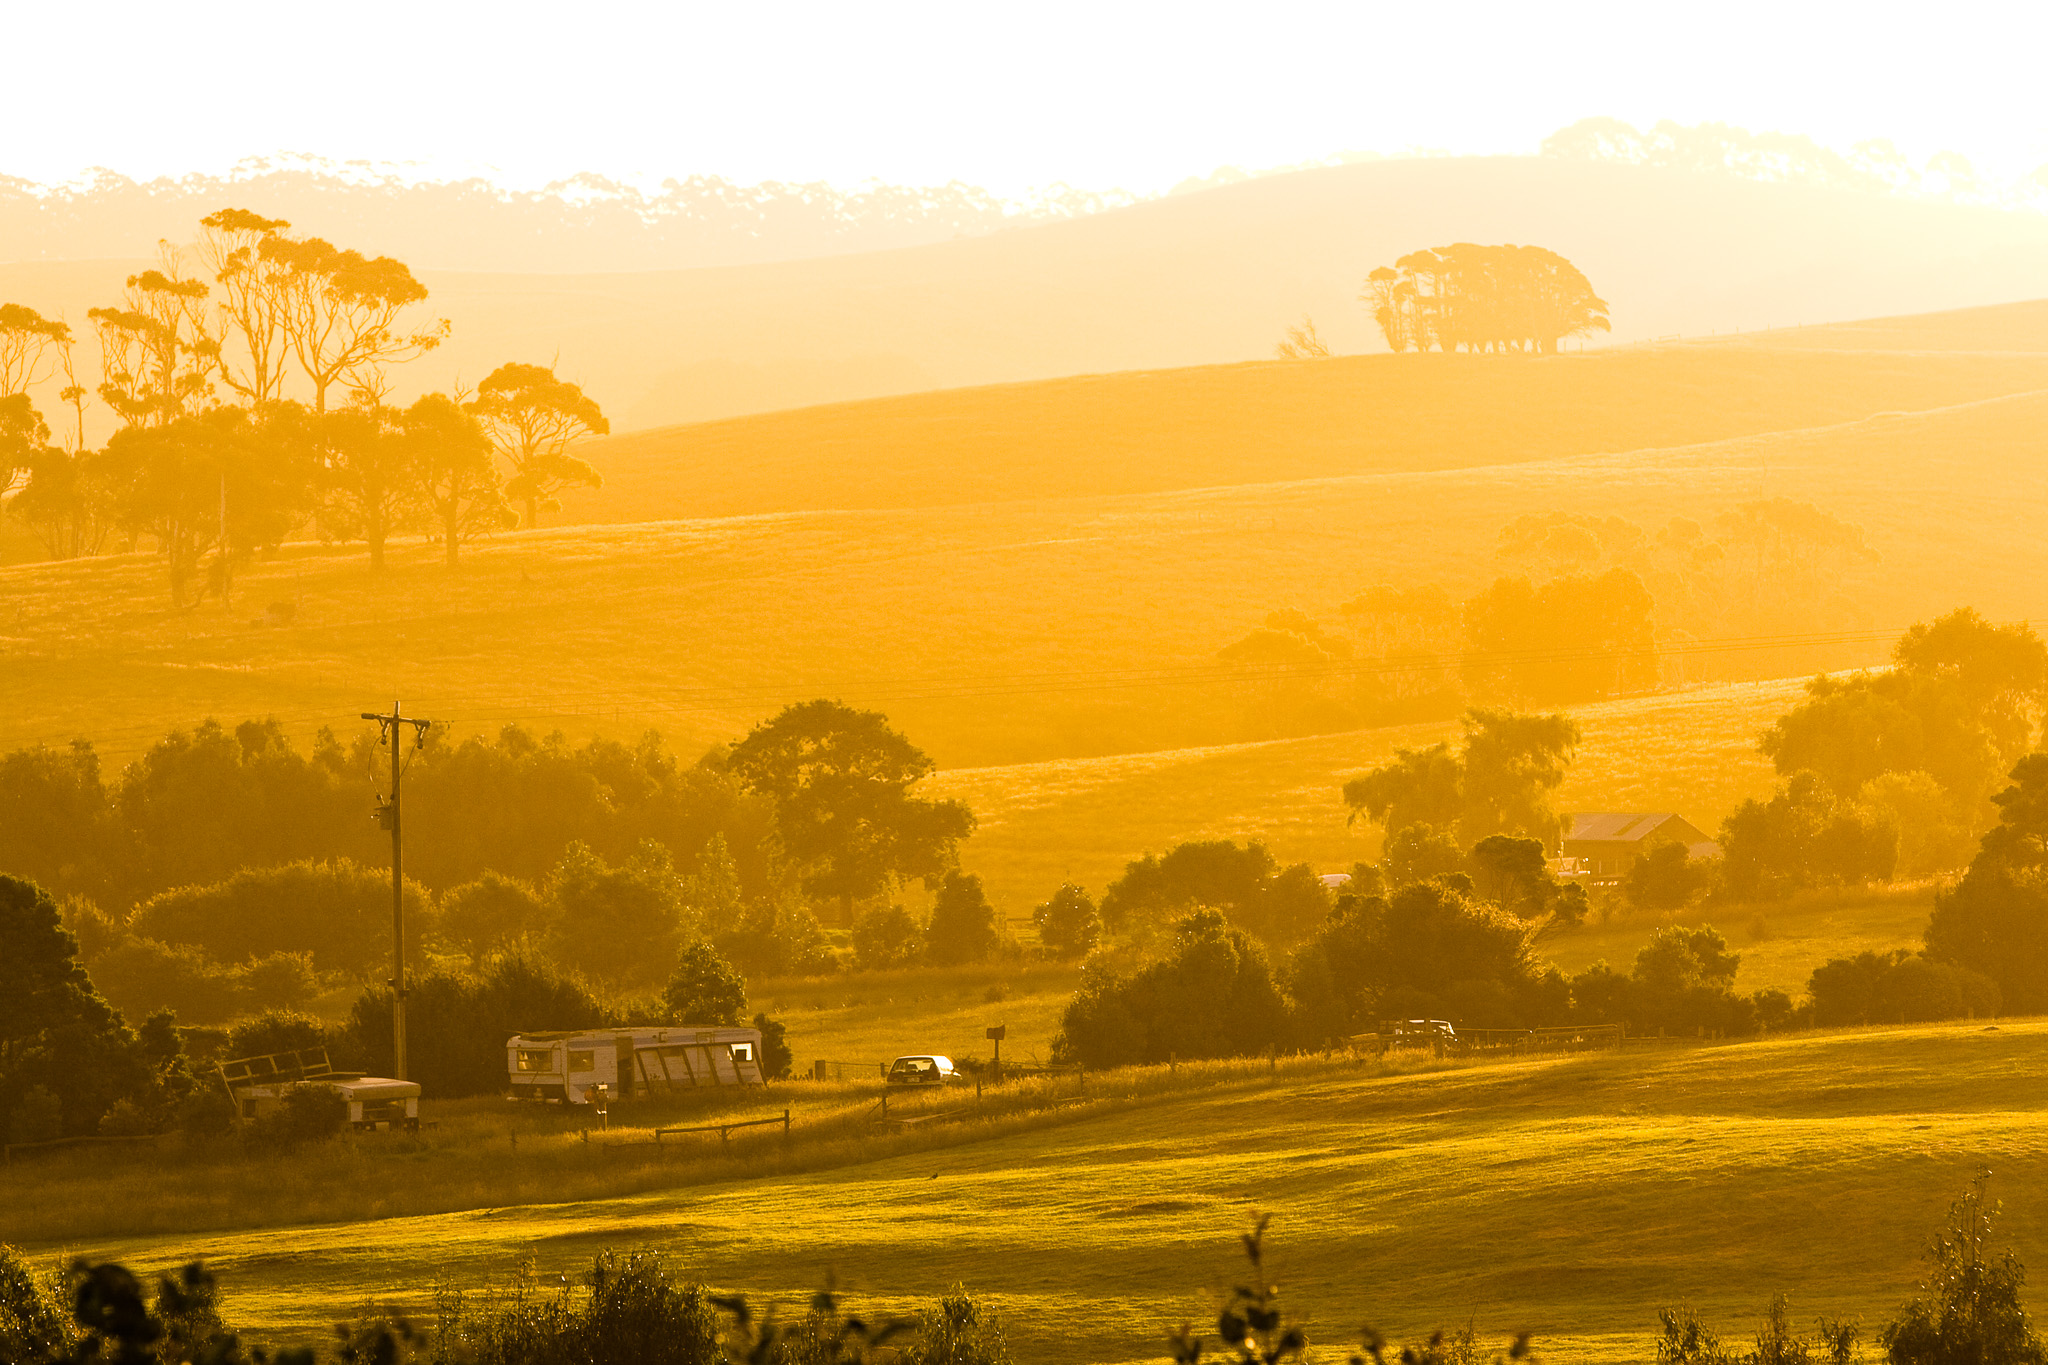 A golden sunset over rolling hills of Apollo Bay on Wednesday, 2nd January 2008. The outskirts of this coastal township are slowly being subdivided into housing estates. (Photo/Ben Loveridge)